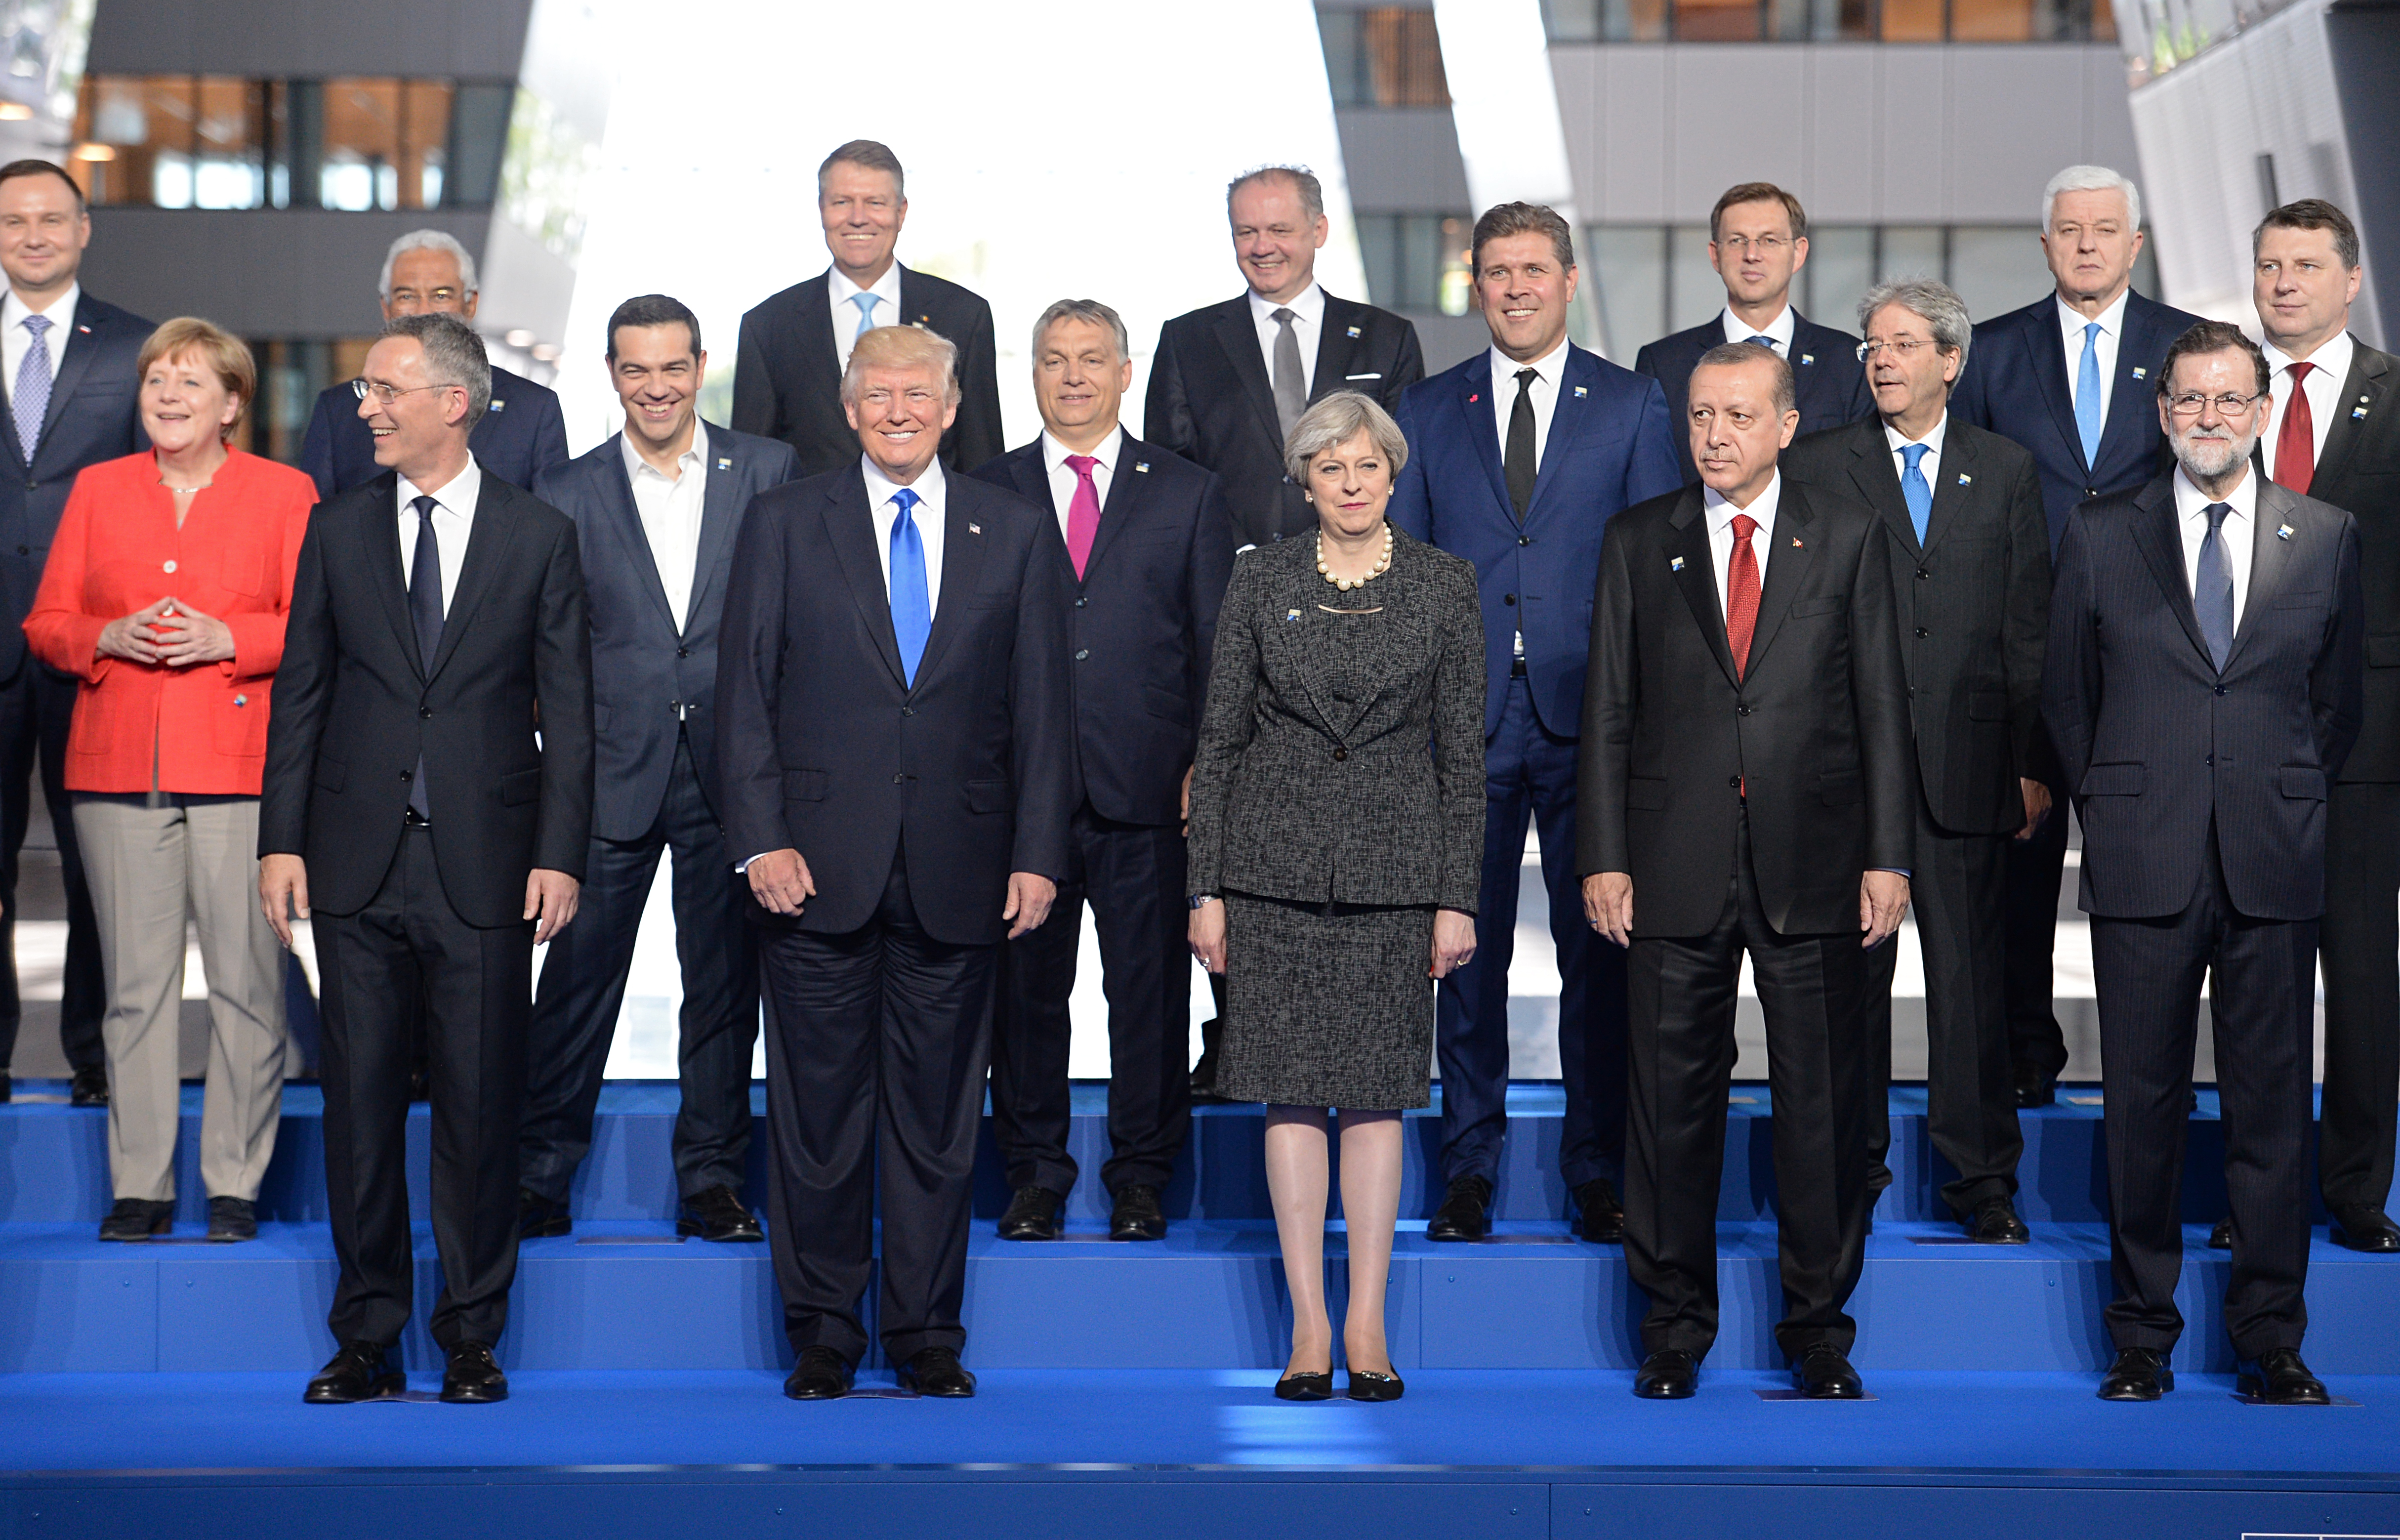 German Chancellor Angela Merkel, (front left to right) NATO Secretary General Jens Stoltenberg, US President Donald Trump, Prime Minister Theresa May and President of Turkey Recep Tayyip Erdogan, during the North Atlantic Treaty Organisation (NATO) summit on May 25, 2017 in Brussels, Belgium.